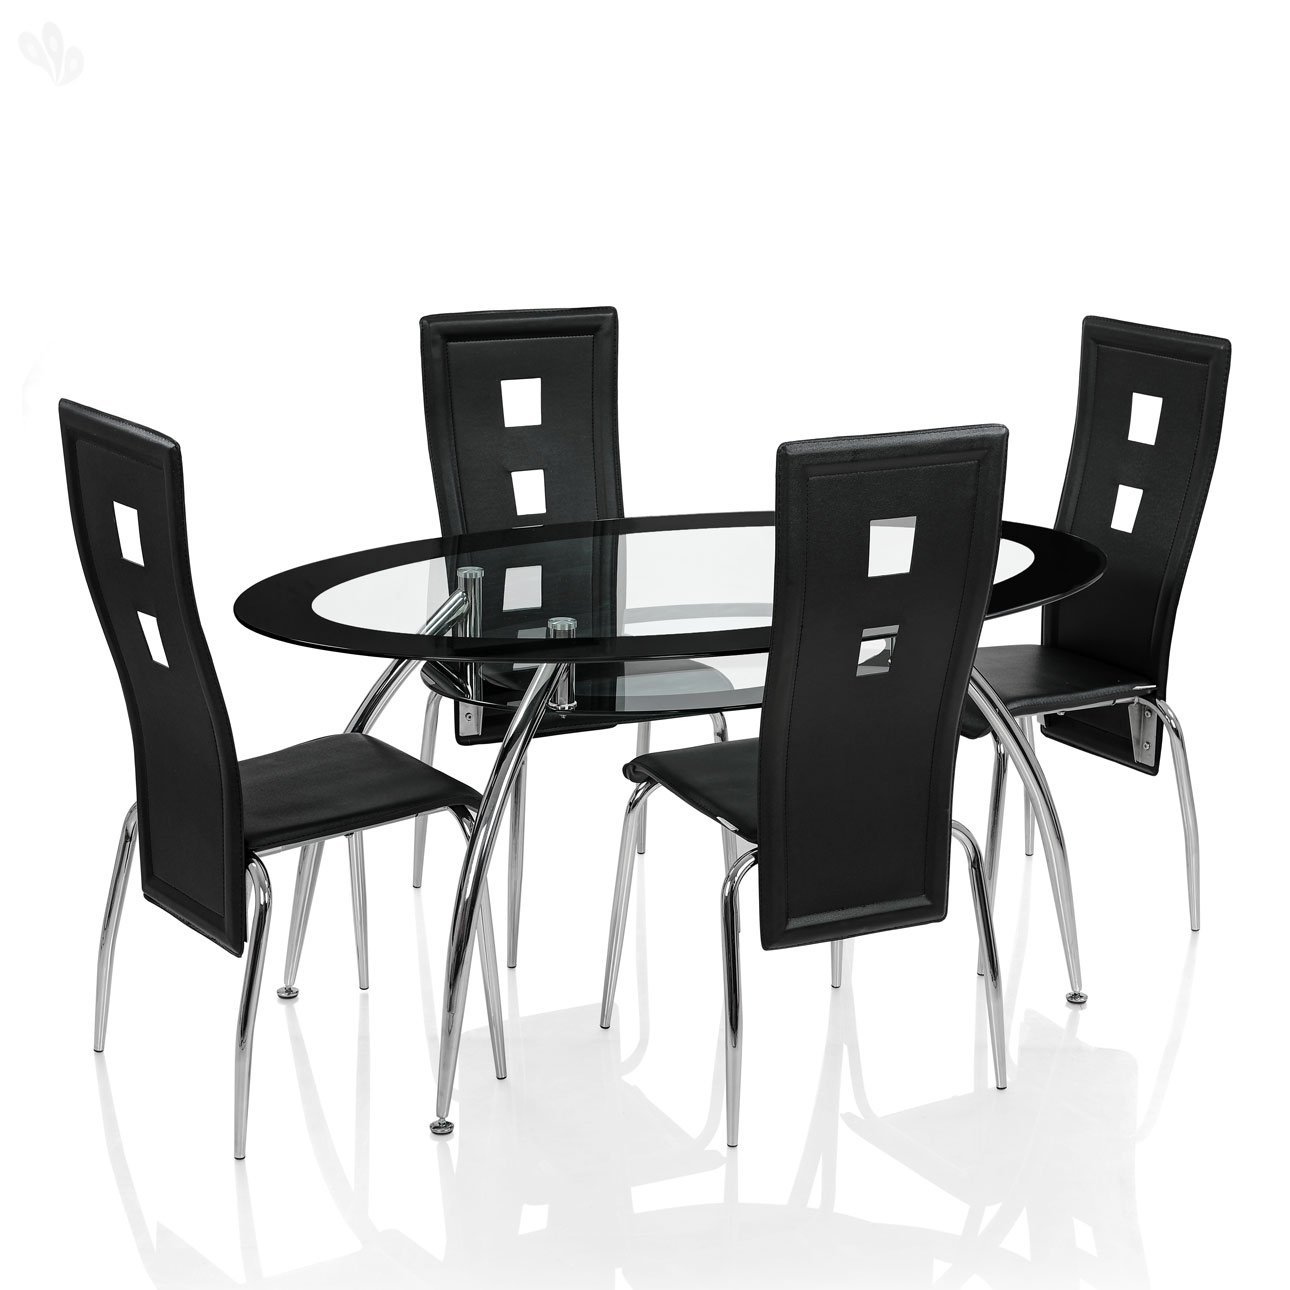 royal oak roger dining set with 4 chairs black amazon in home royal oak roger dining set with 4 chairs black amazon in home kitchen